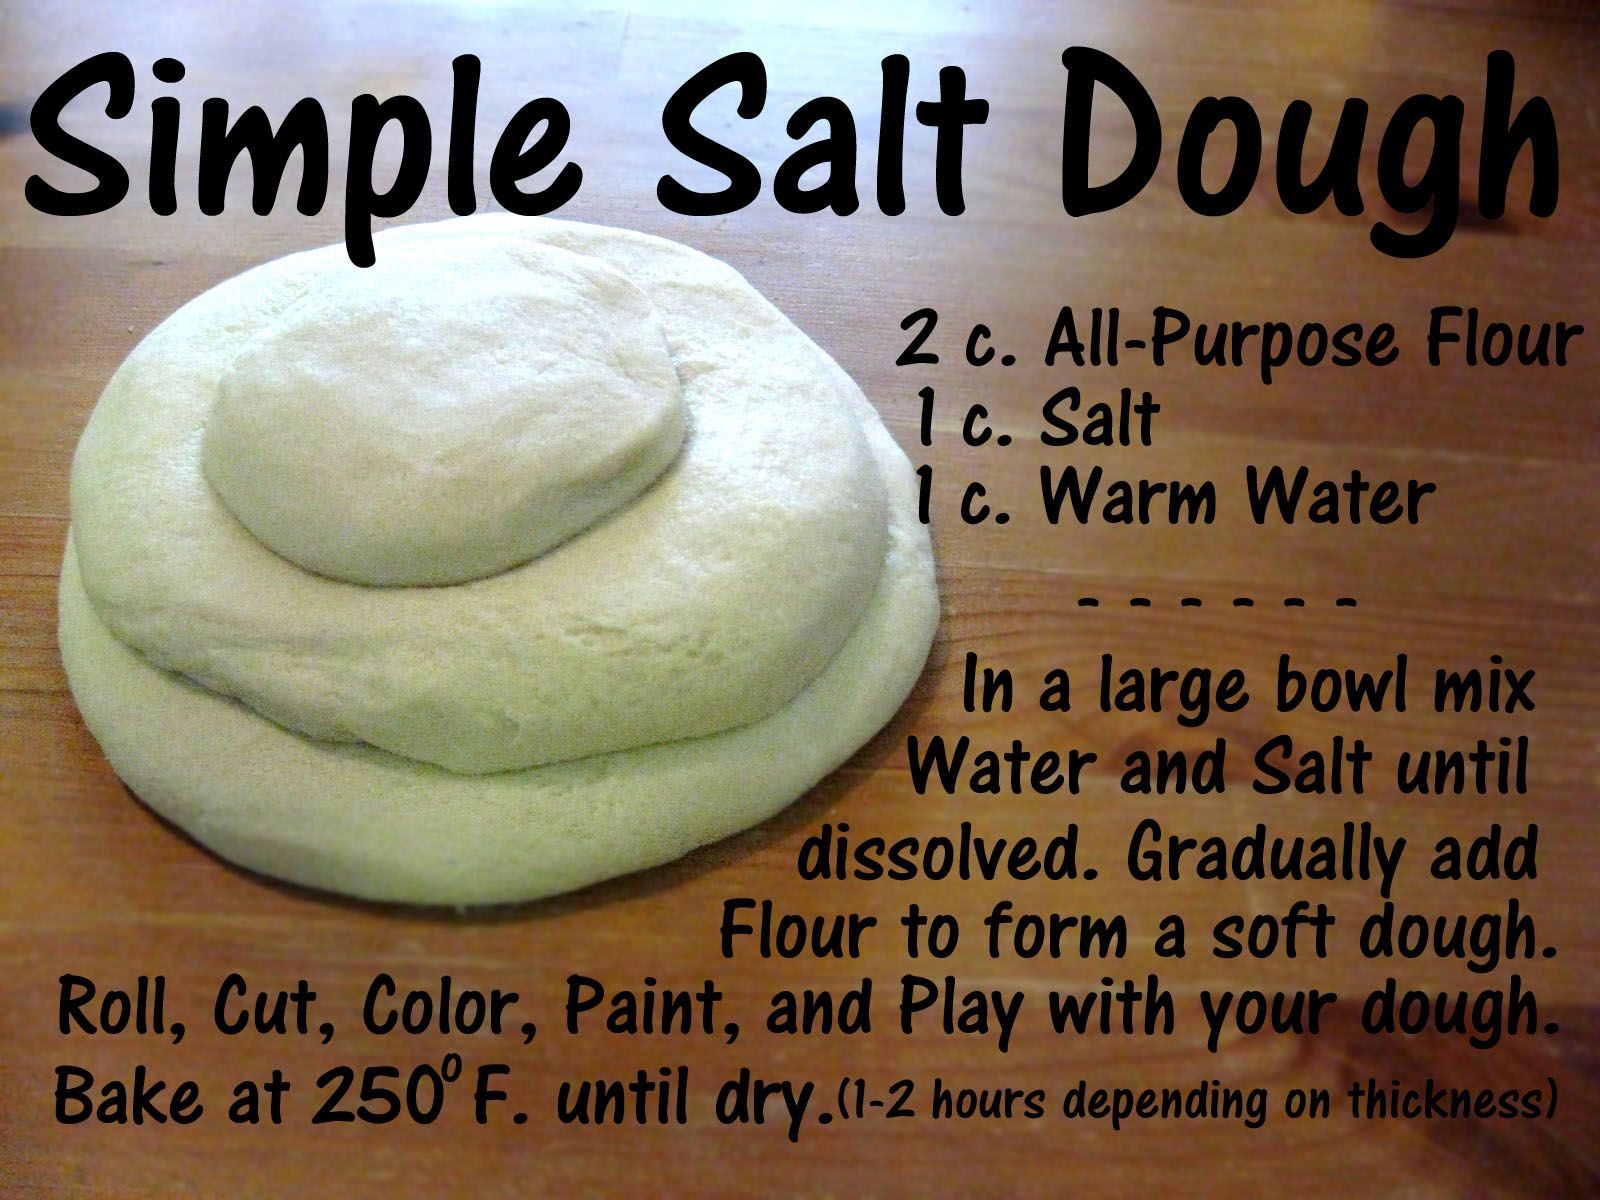 How to make oven bake clay without salt